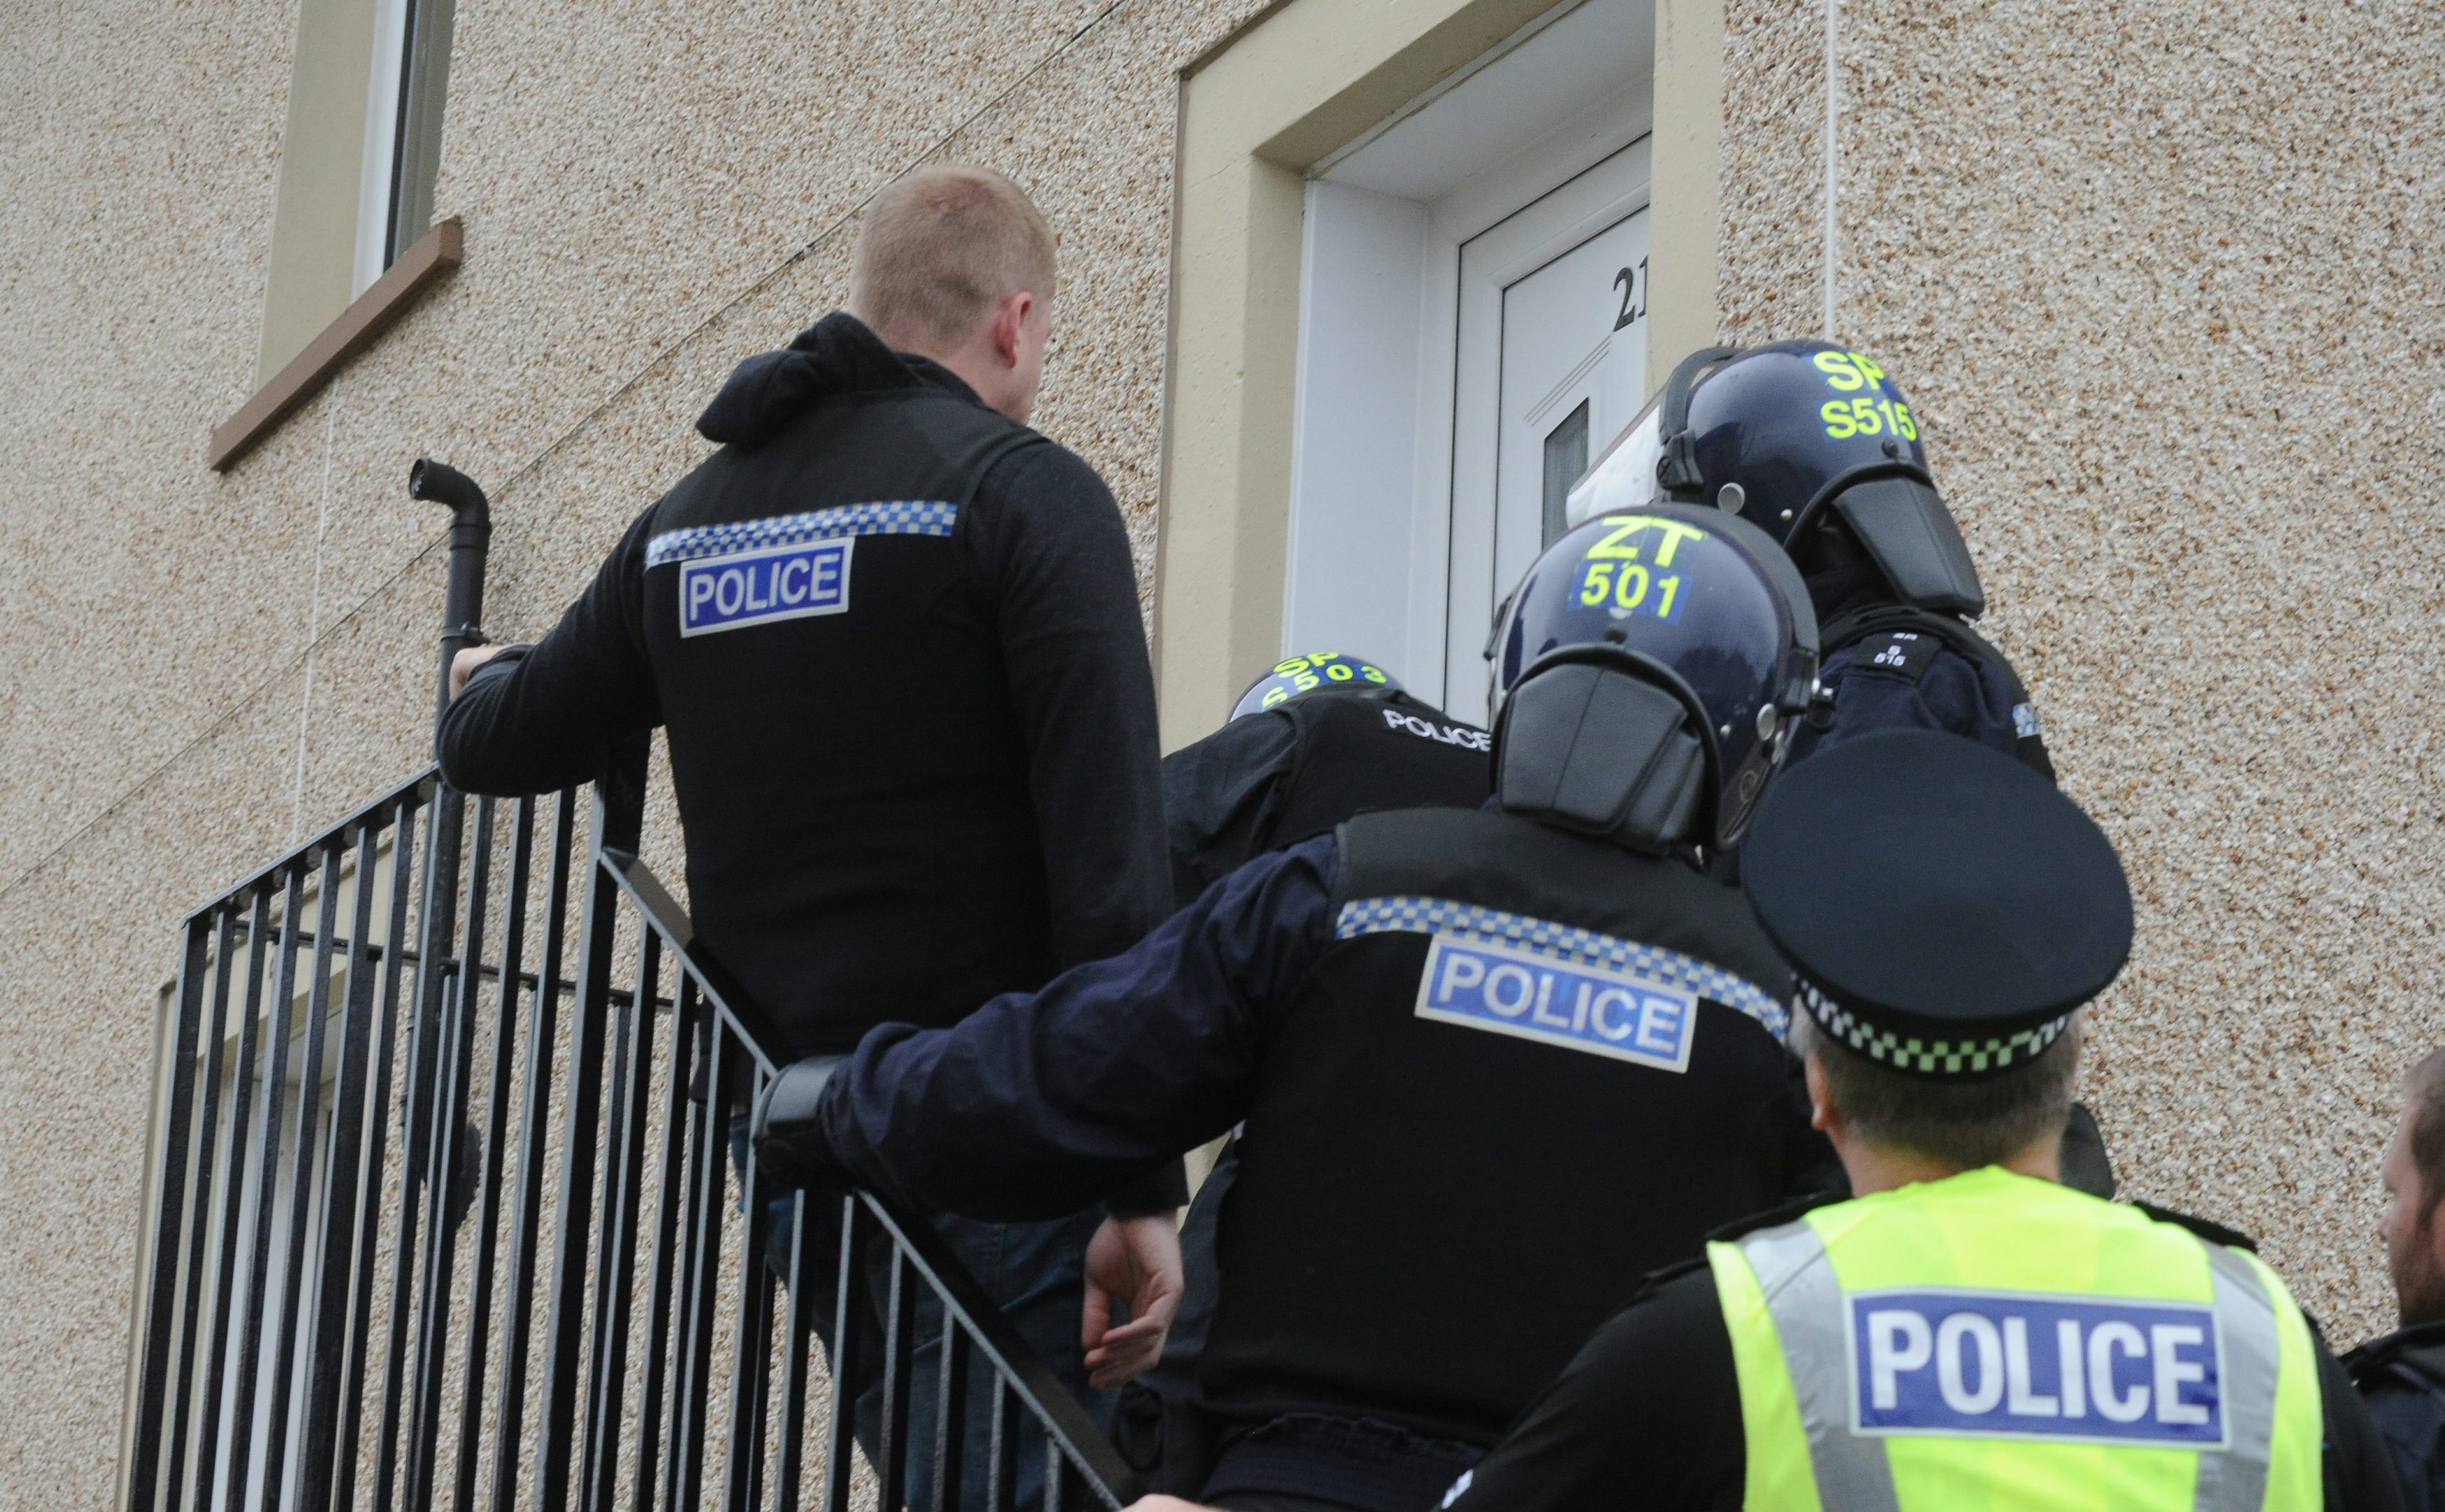 Police as they 'hit' four properties in relation to various crimes reported to them.